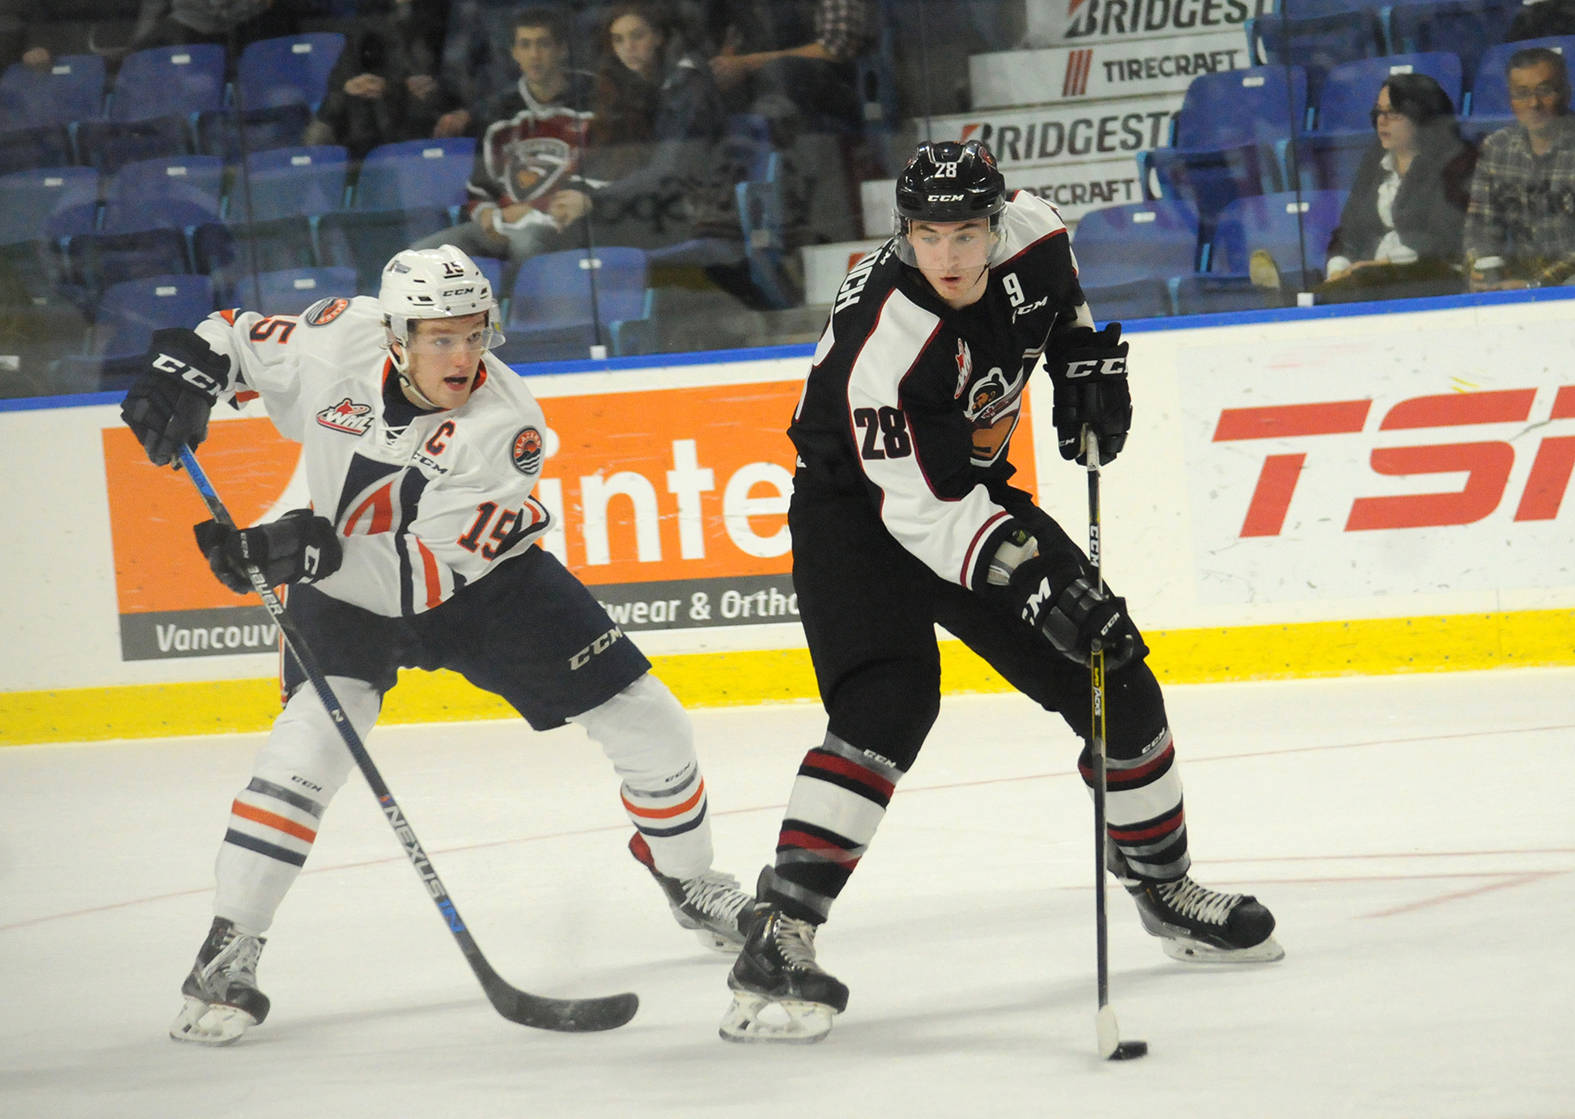 Vancouver Giants defenceman Darian Skeoch is hoping for a bounce back season after suiting up in just 27 games last year. Gary Ahuja Langley Times file photo